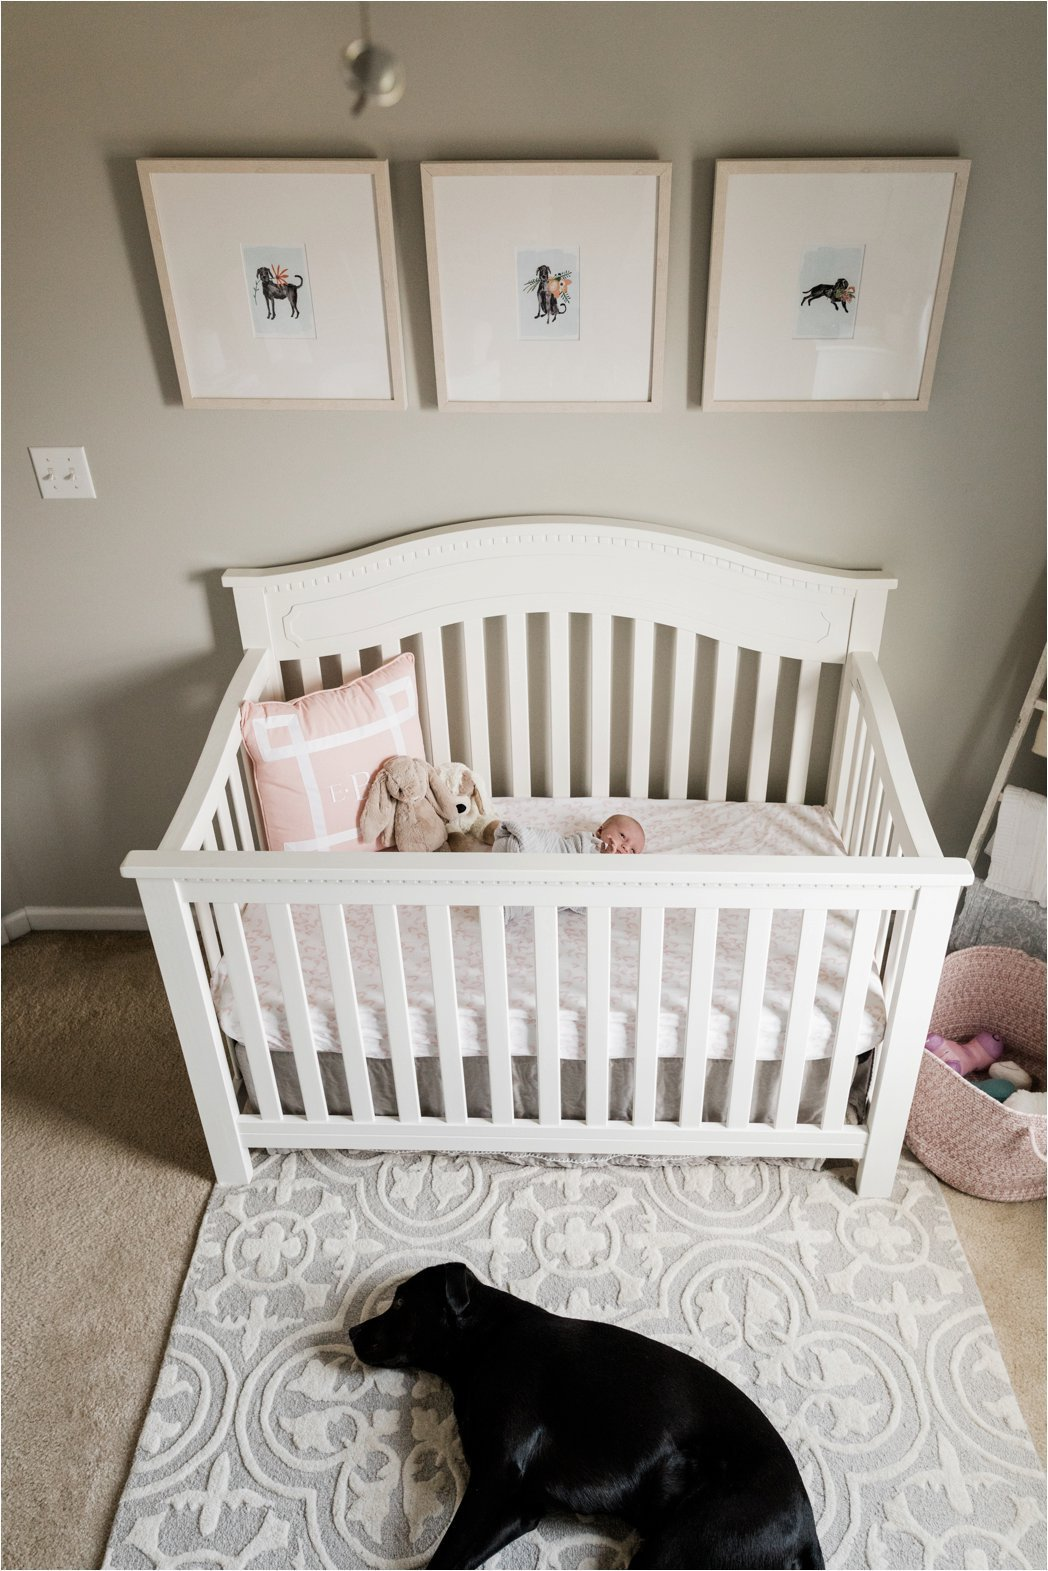 black lab sleeping outside crib with newborn baby girl